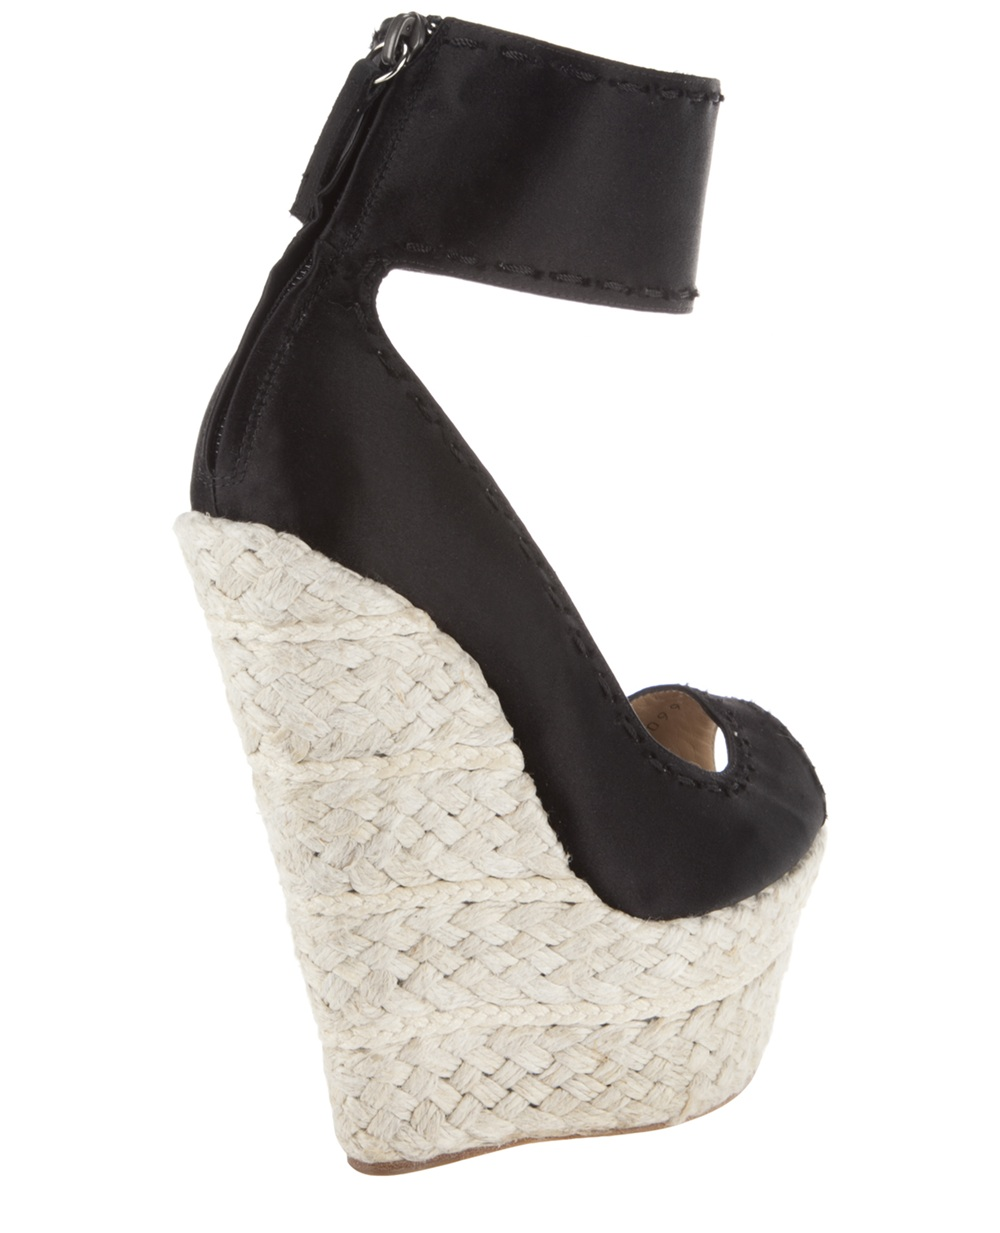 Wedge shoes1